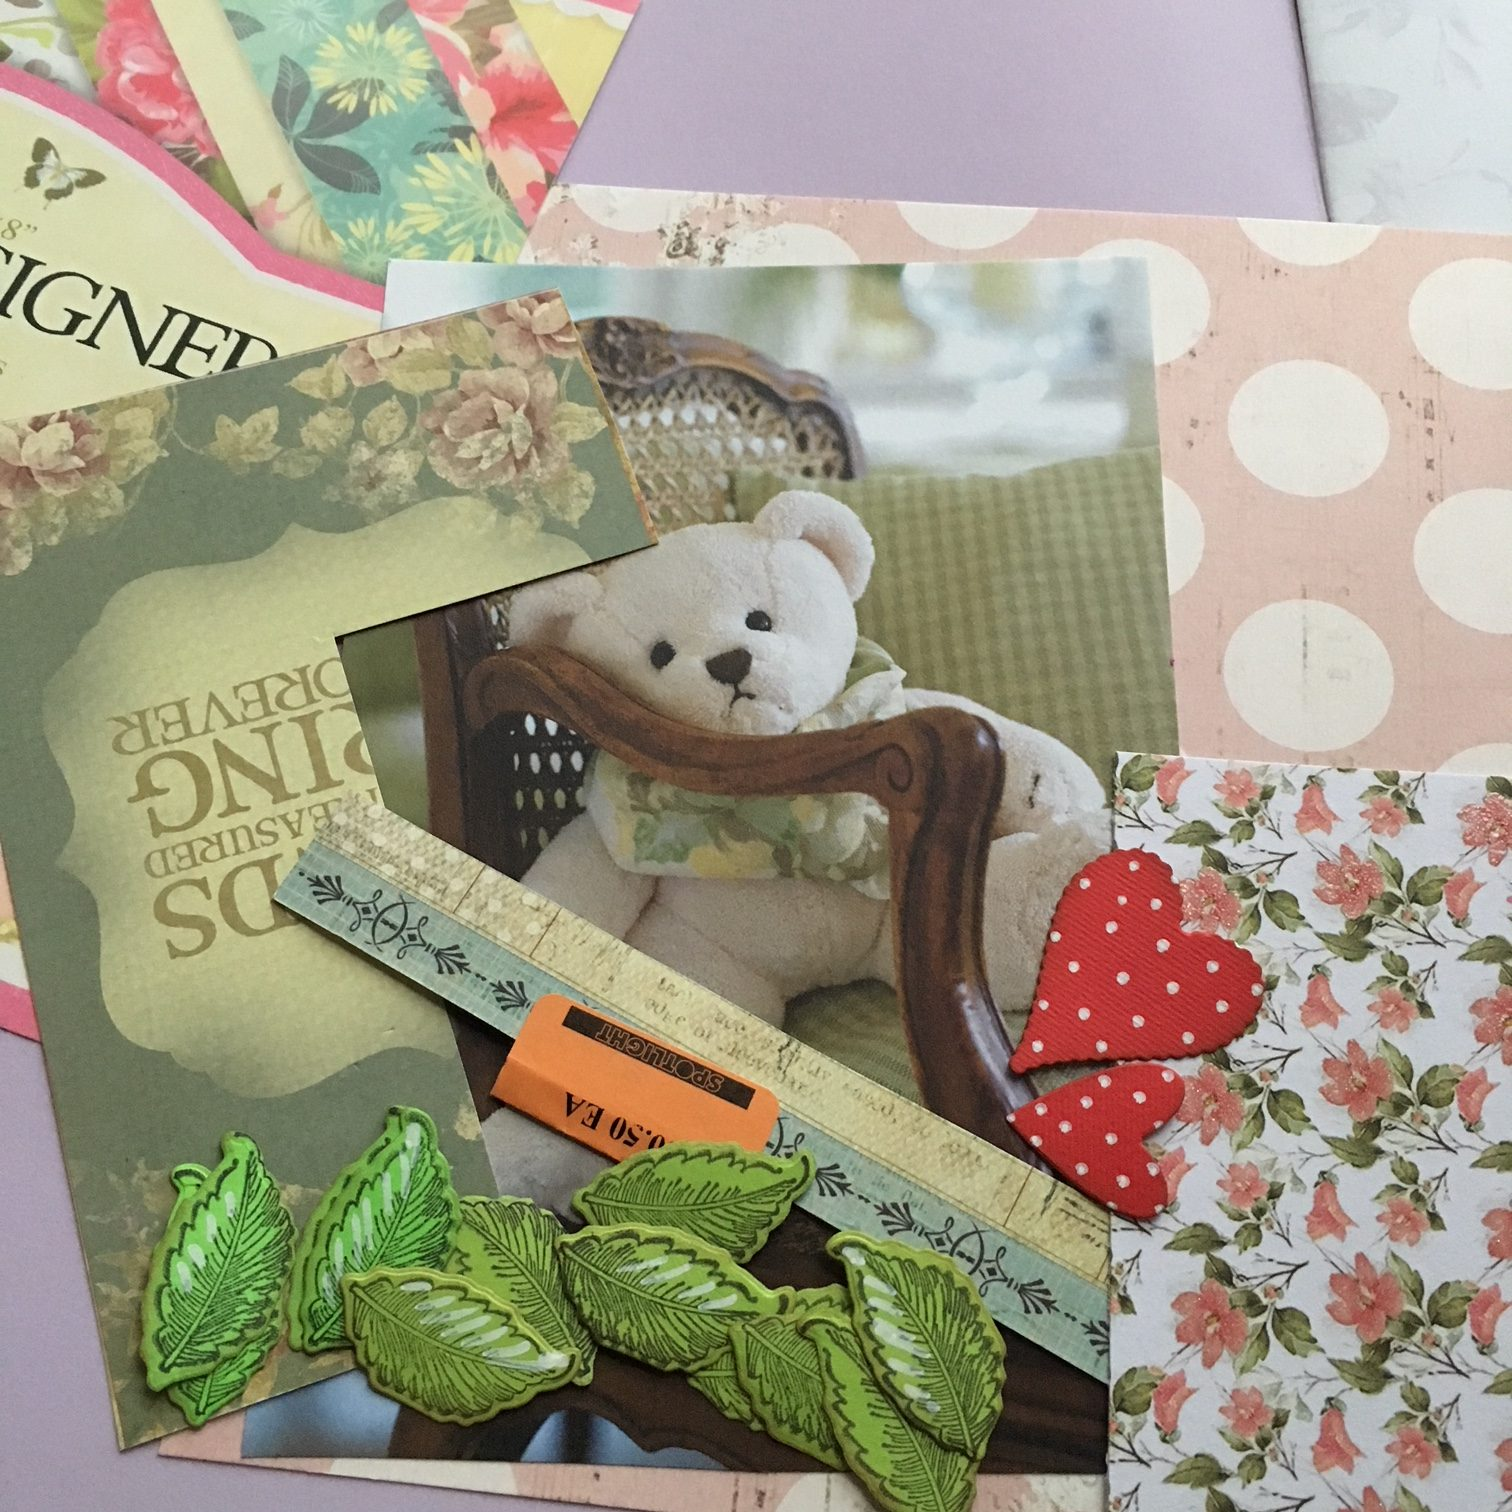 Teddy Bear scrapbook project - paper scraps and catalogue photo of a teddy bear